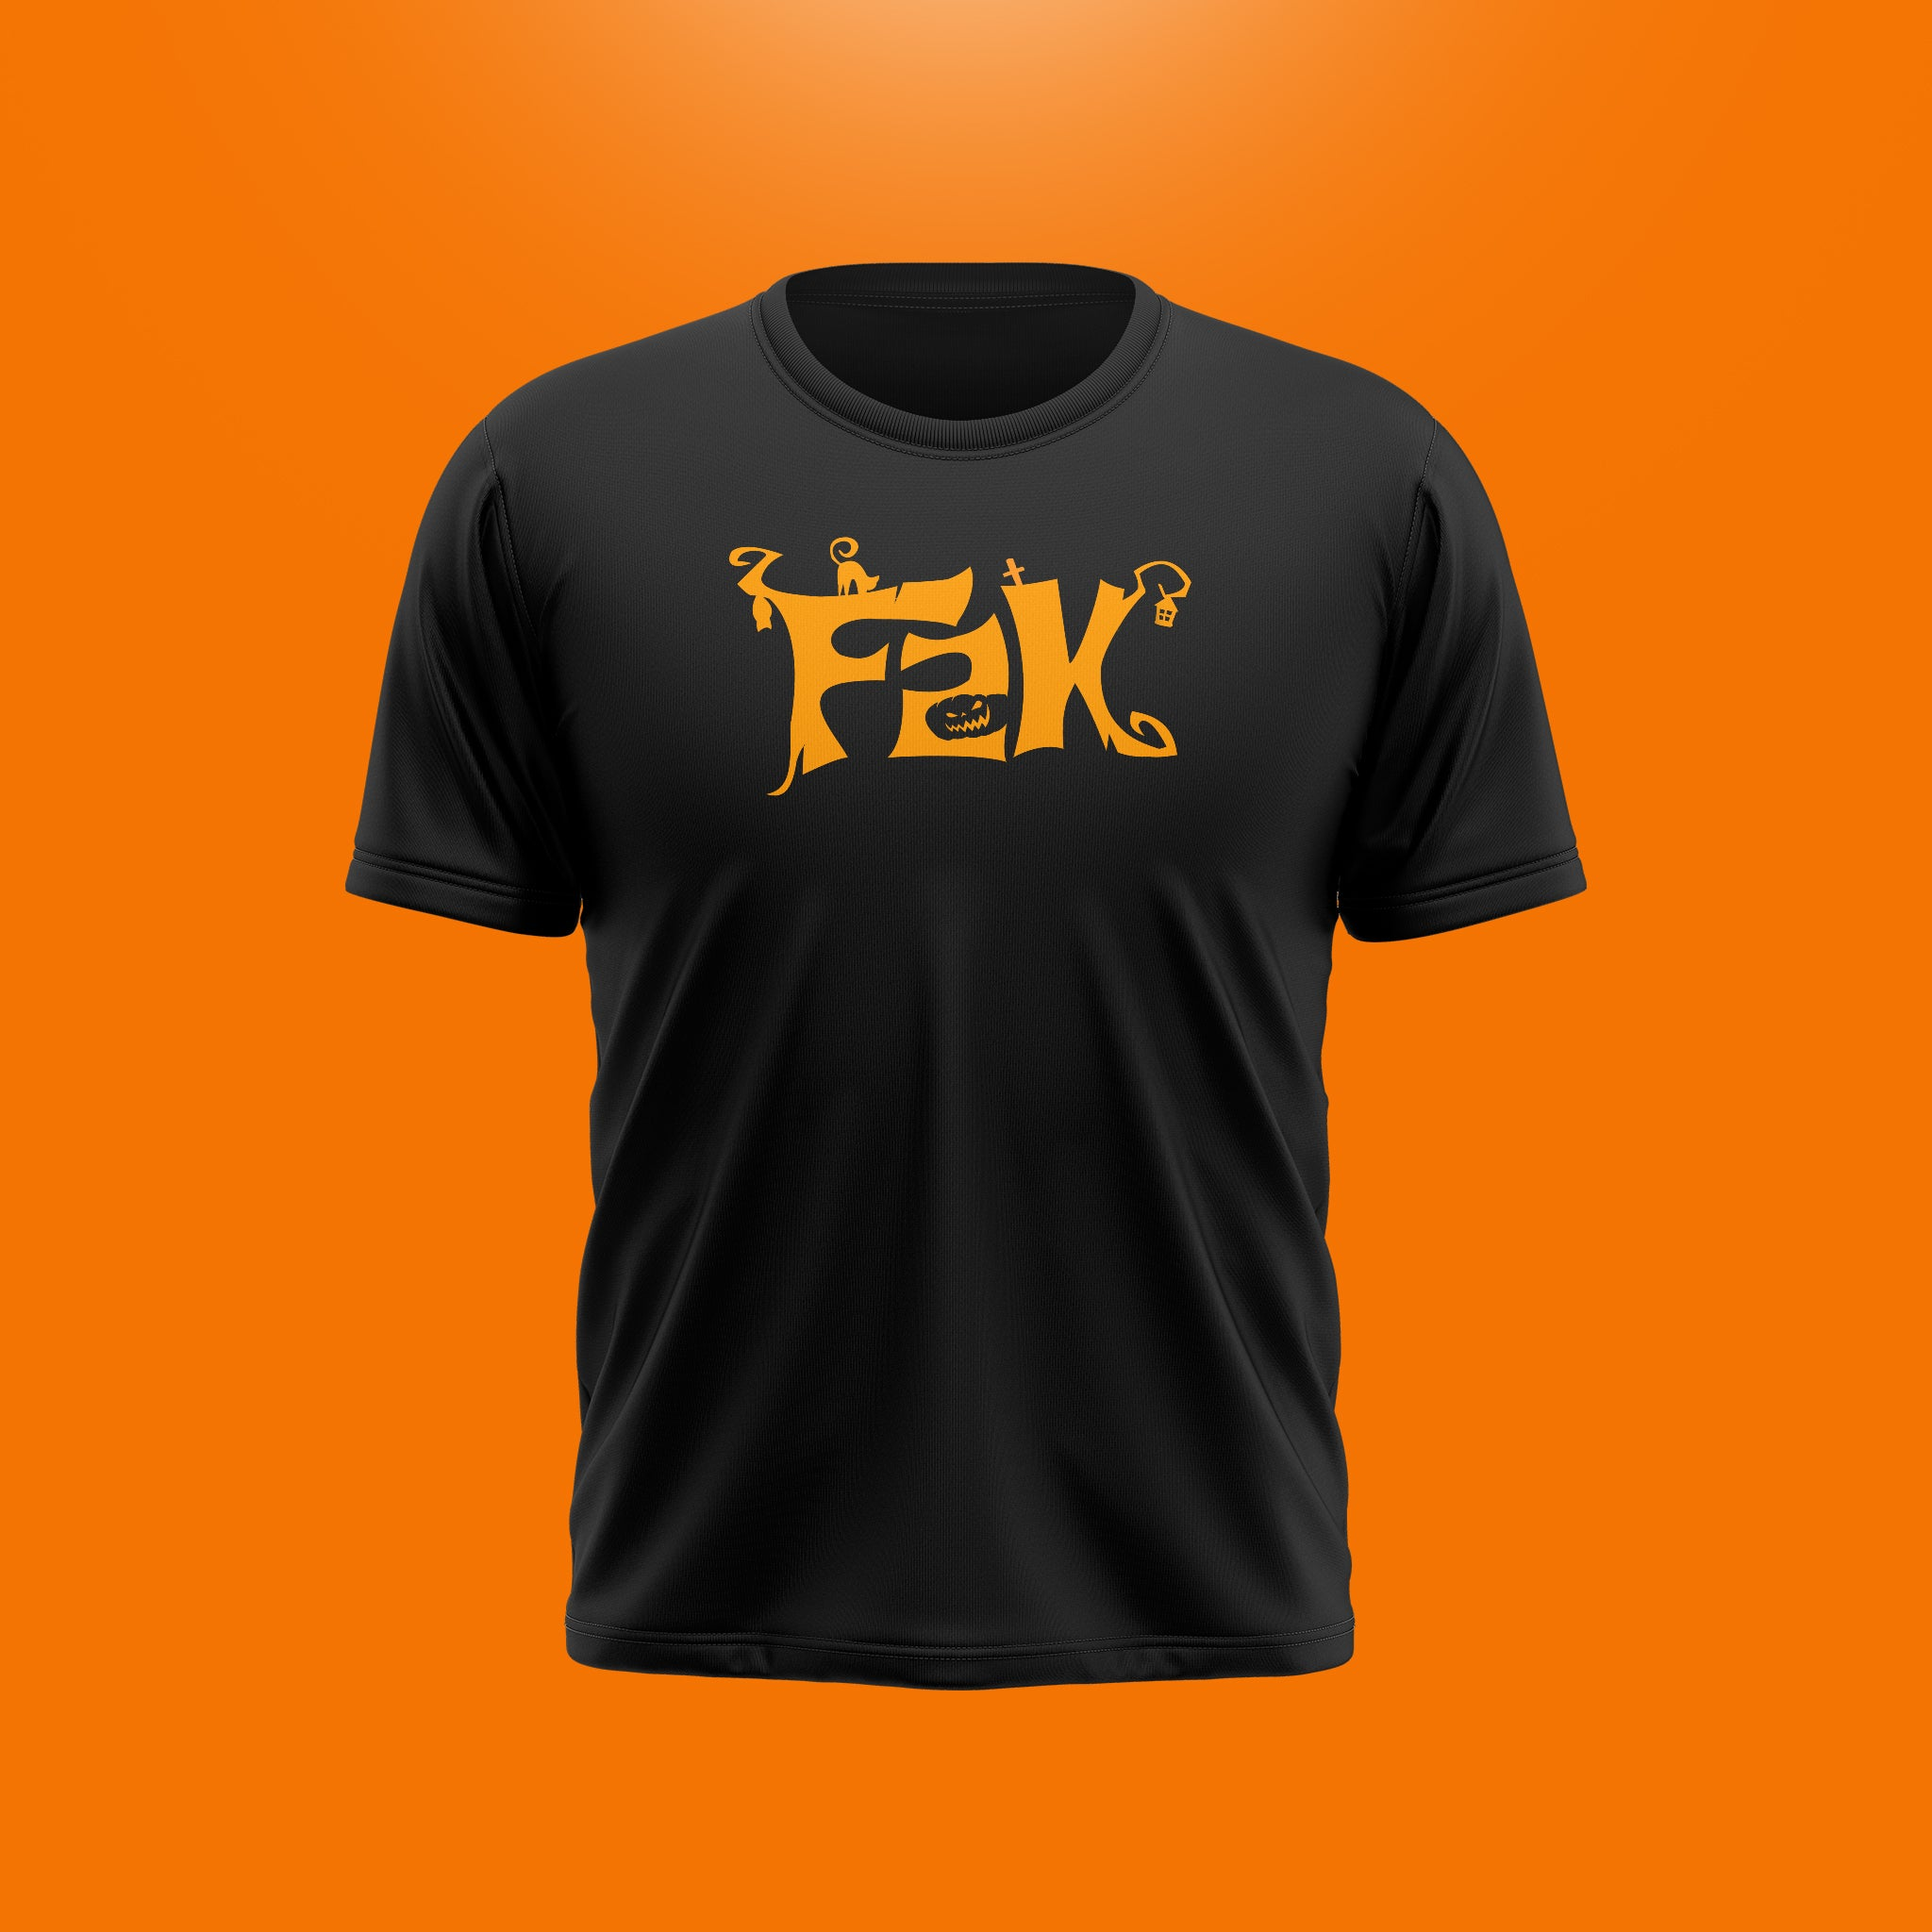 F2K x SPOOKY SZN T-Shirt (Shipping Oct 21)